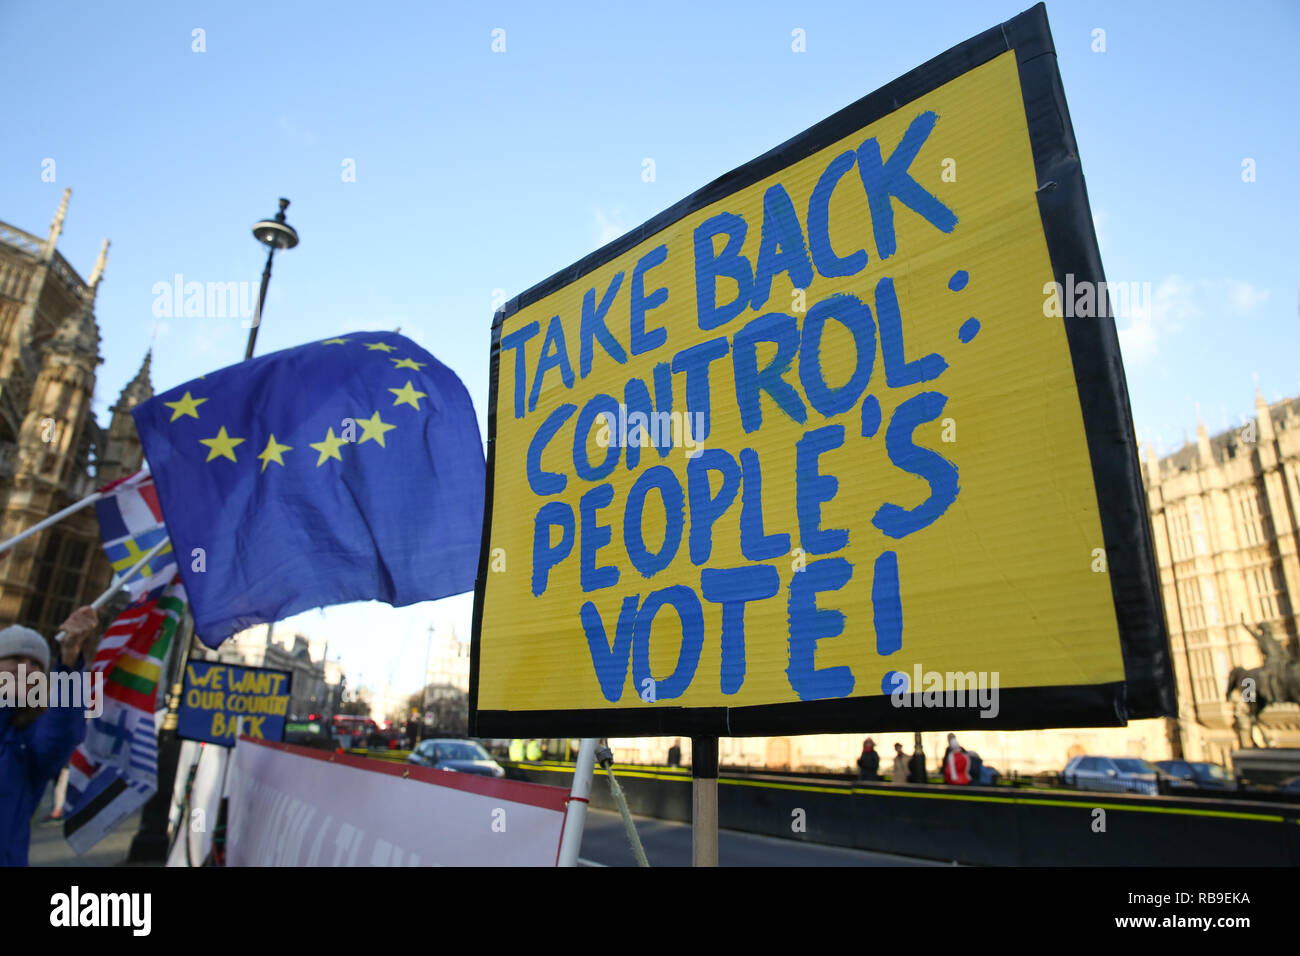 London, UK. 8th Jan, 2019. Anti-Brexit demonstrator seen waving European Union flags during the protest.Anti Brexit demonstrators gather outside the British Parliament a week before the MPs to vote on the finalized Brexit deal, MPs will vote on Theresa May's Brexit deal on Tuesday, 15 January. Credit: Dinendra Haria/SOPA Images/ZUMA Wire/Alamy Live News - Stock Image